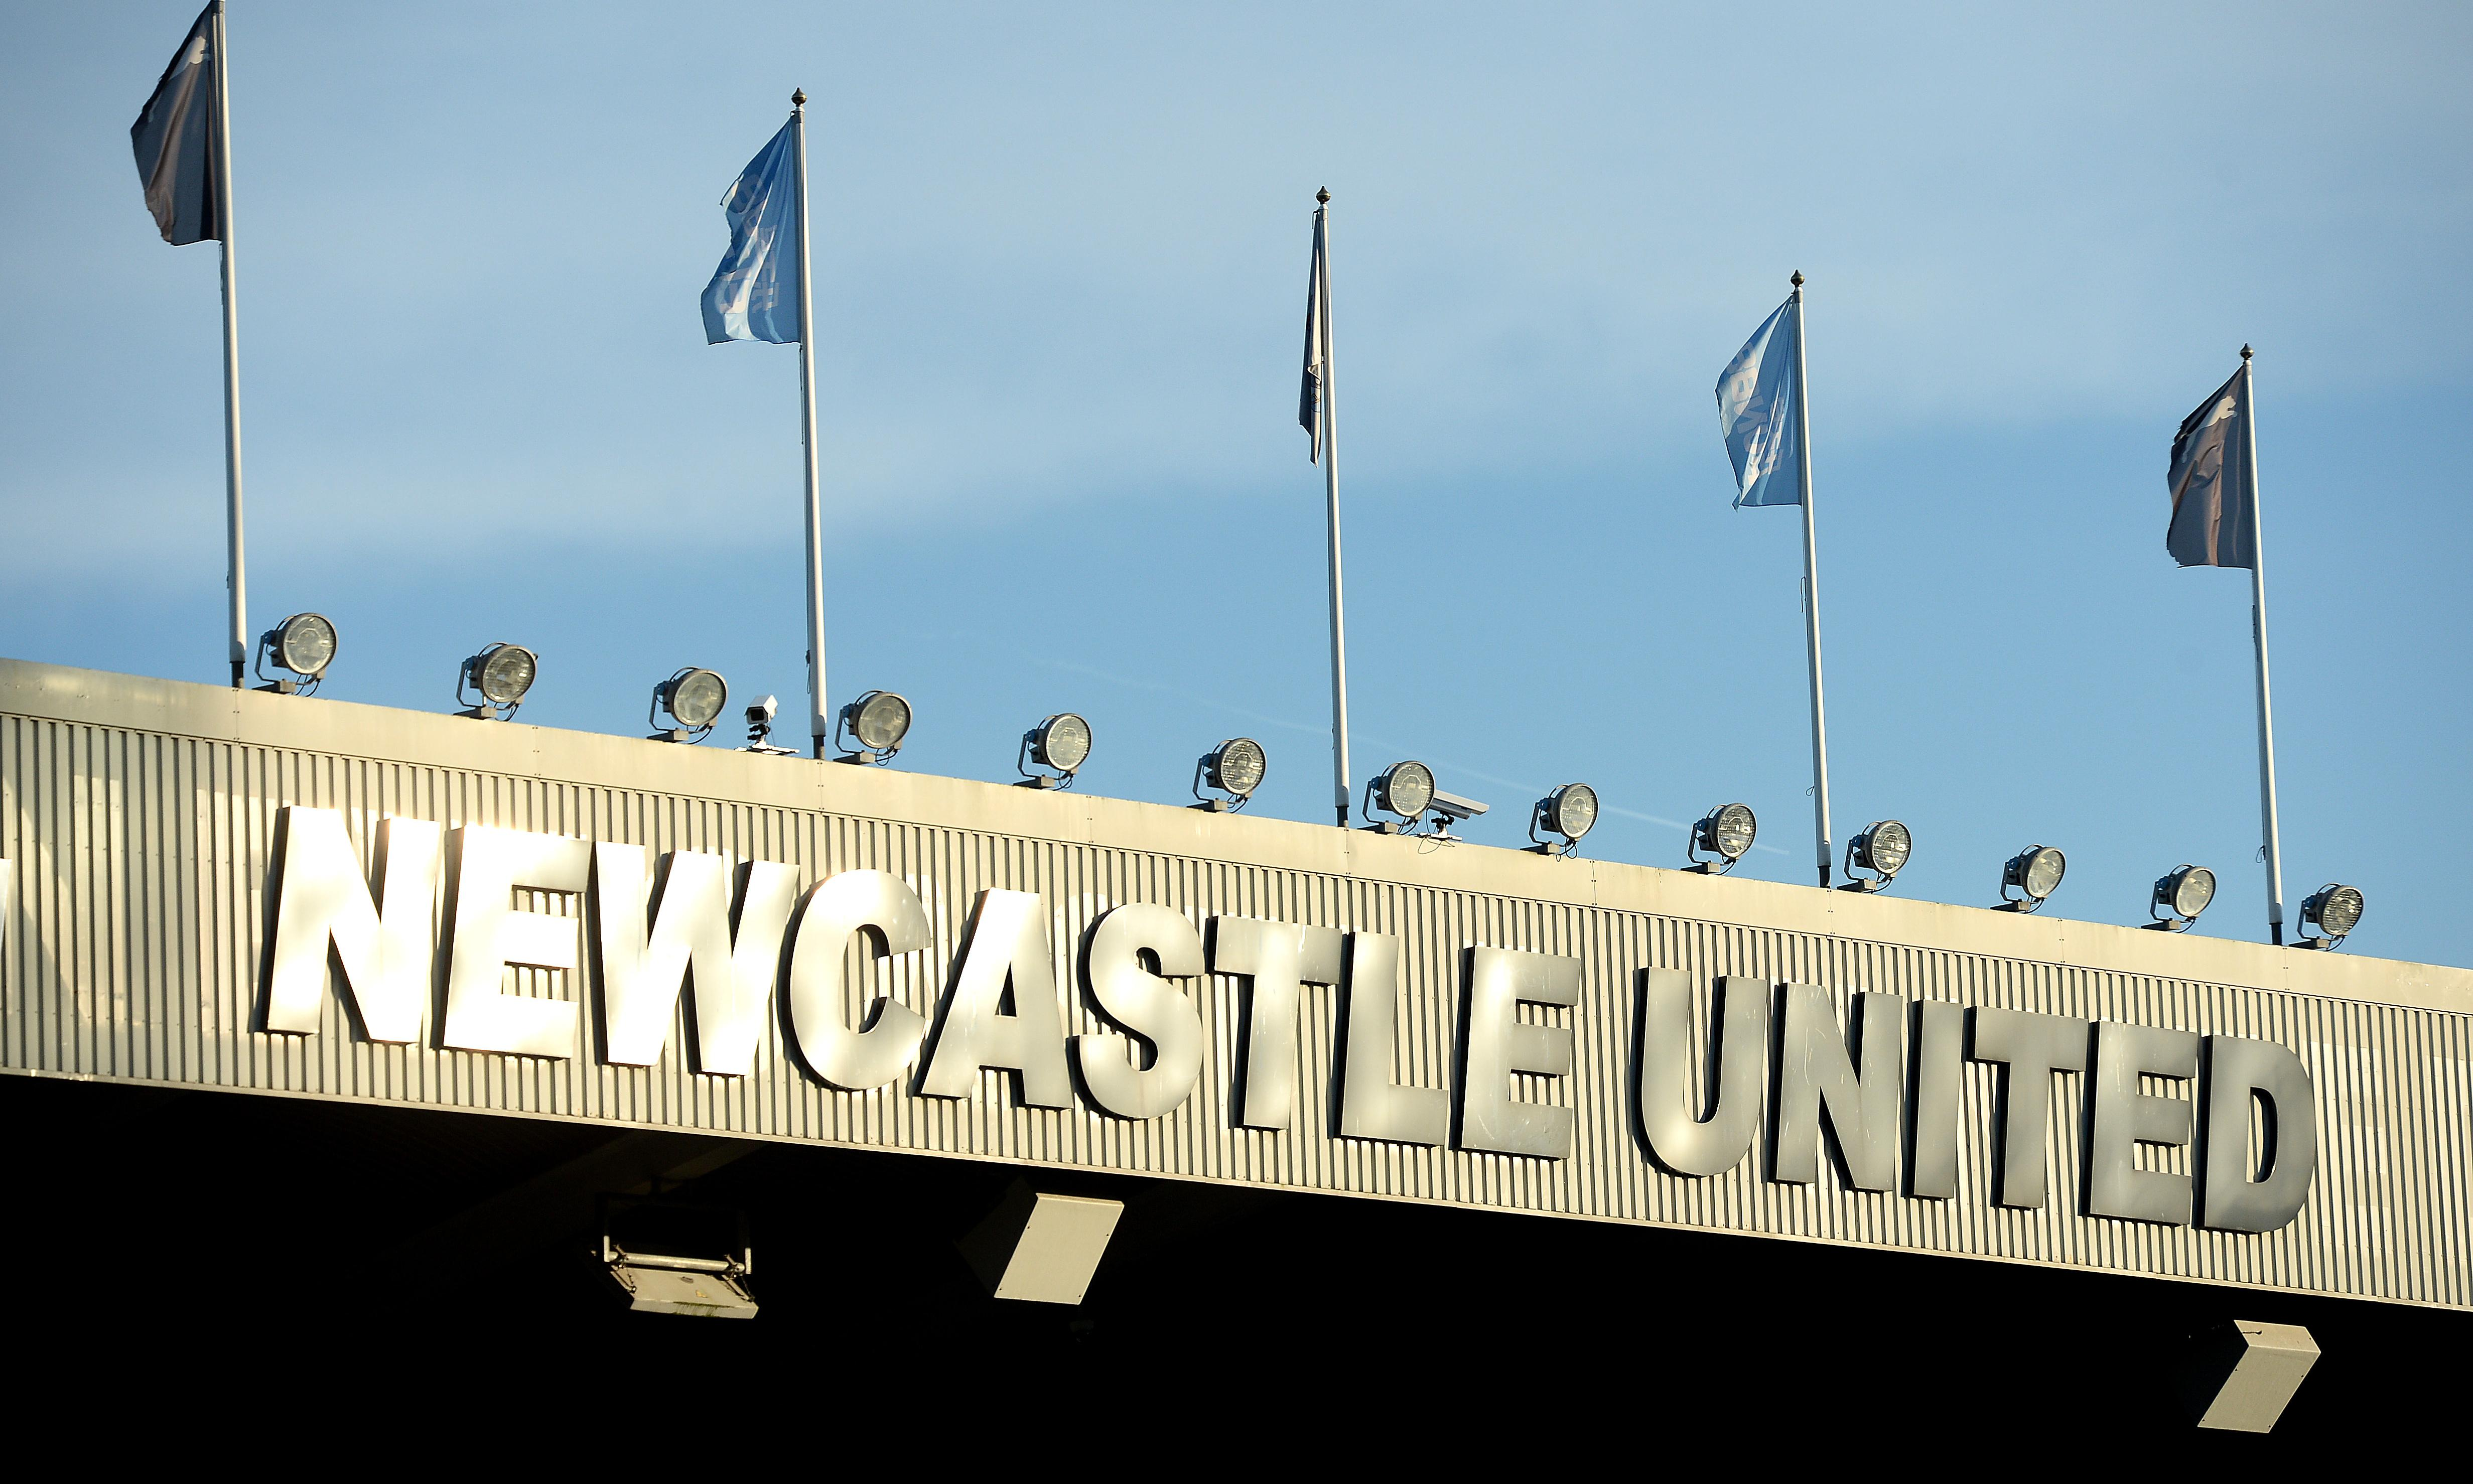 Newcastle United decline to comment on reported Saudi Arabia takeover talks